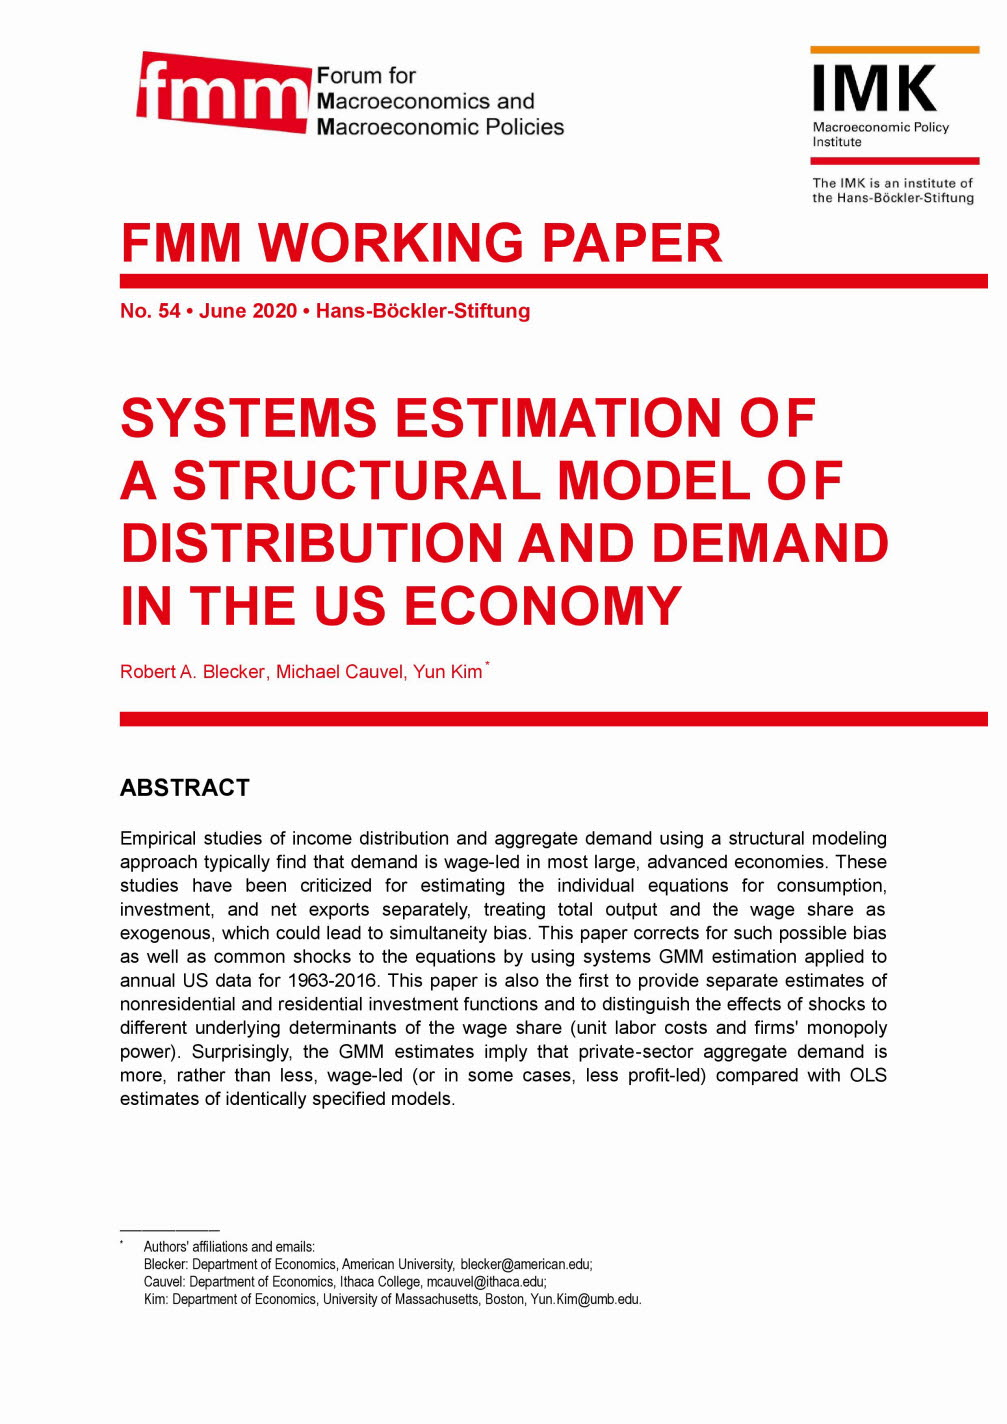 Systems estimation of a structural model of distribution and demand in the US economy